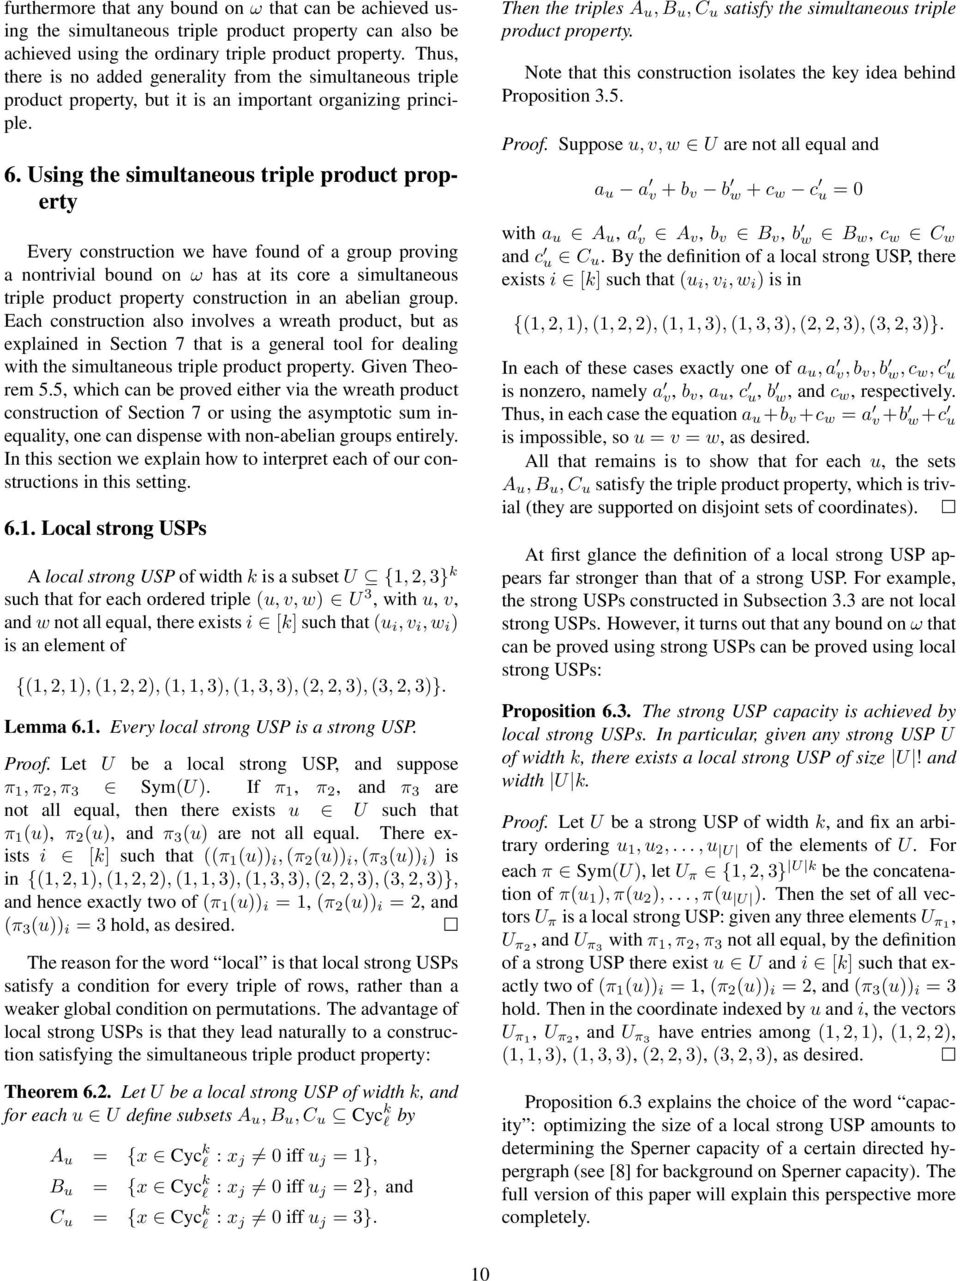 Using the simultaneous triple product property Every construction we have found of a group proving a nontrivial bound on ω has at its core a simultaneous triple product property construction in an